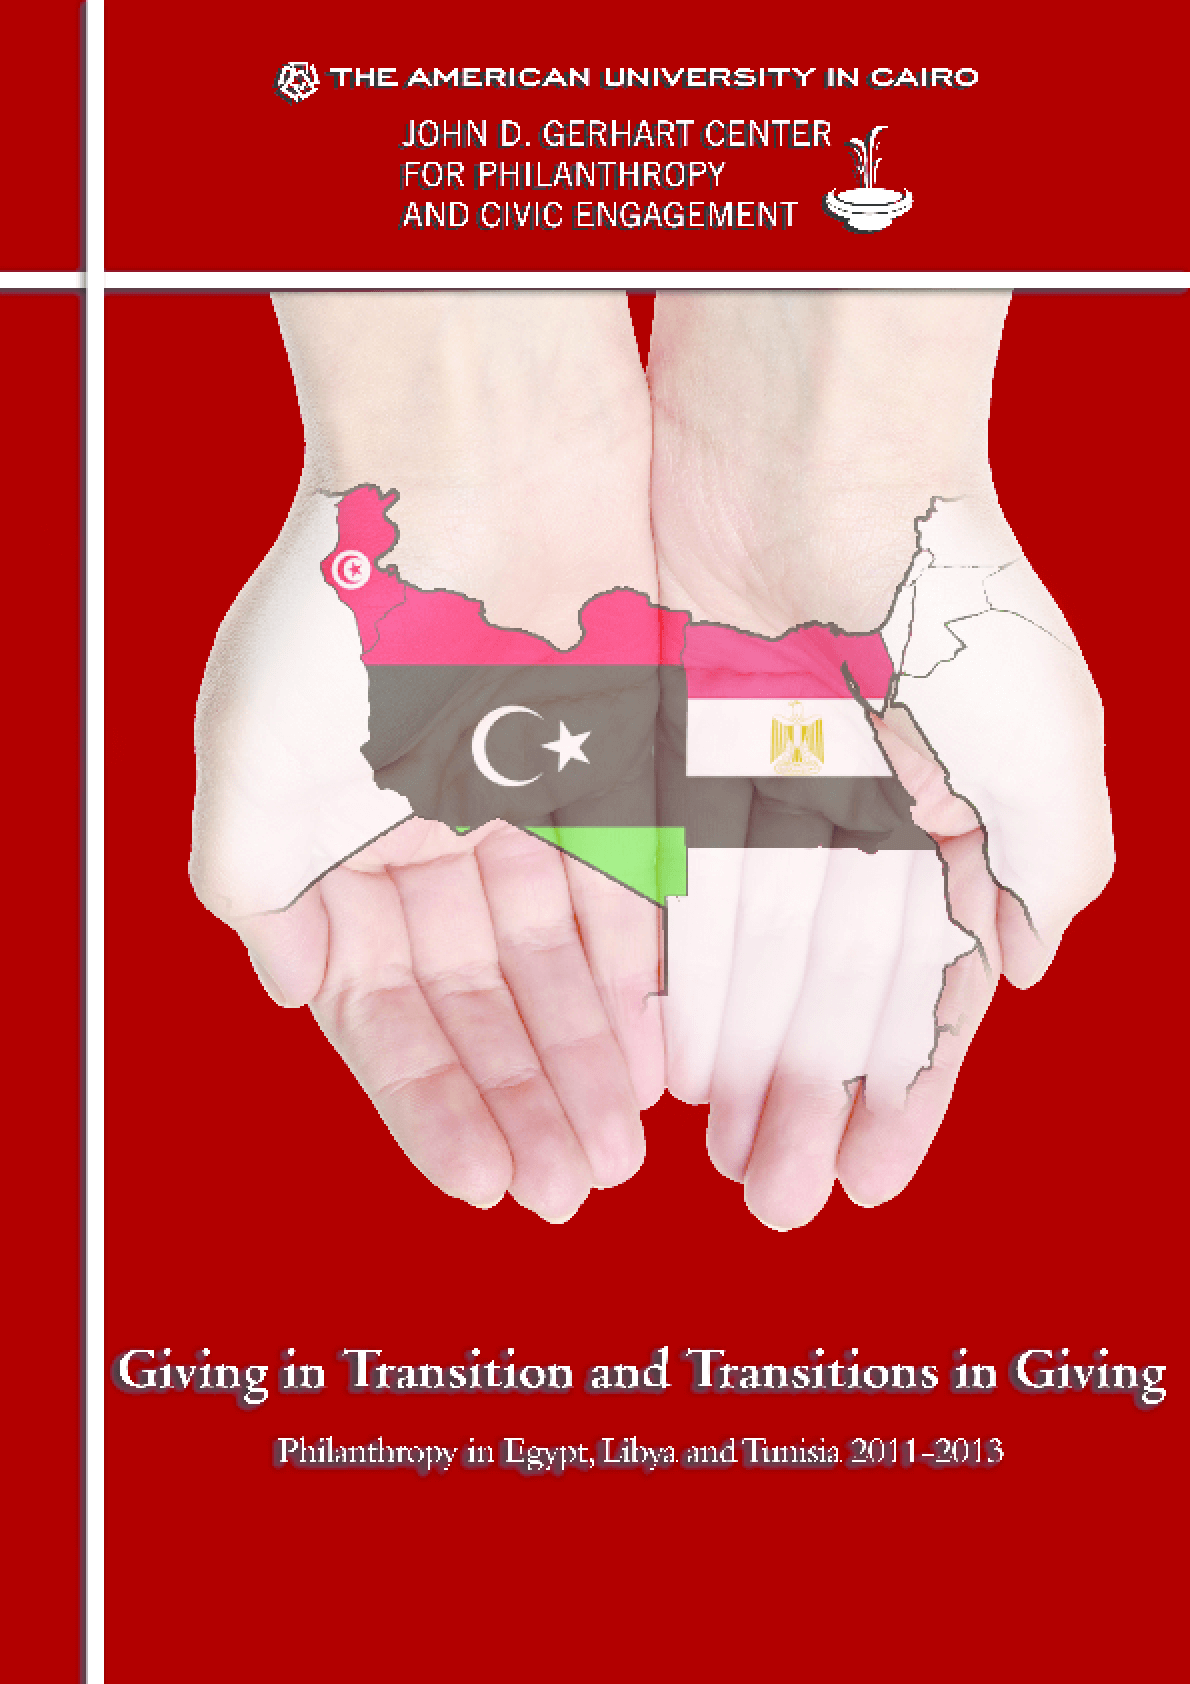 Giving in Transition and Transitions in Giving: Philanthropy in Egypt, Libya and Tunisia 2011-2013